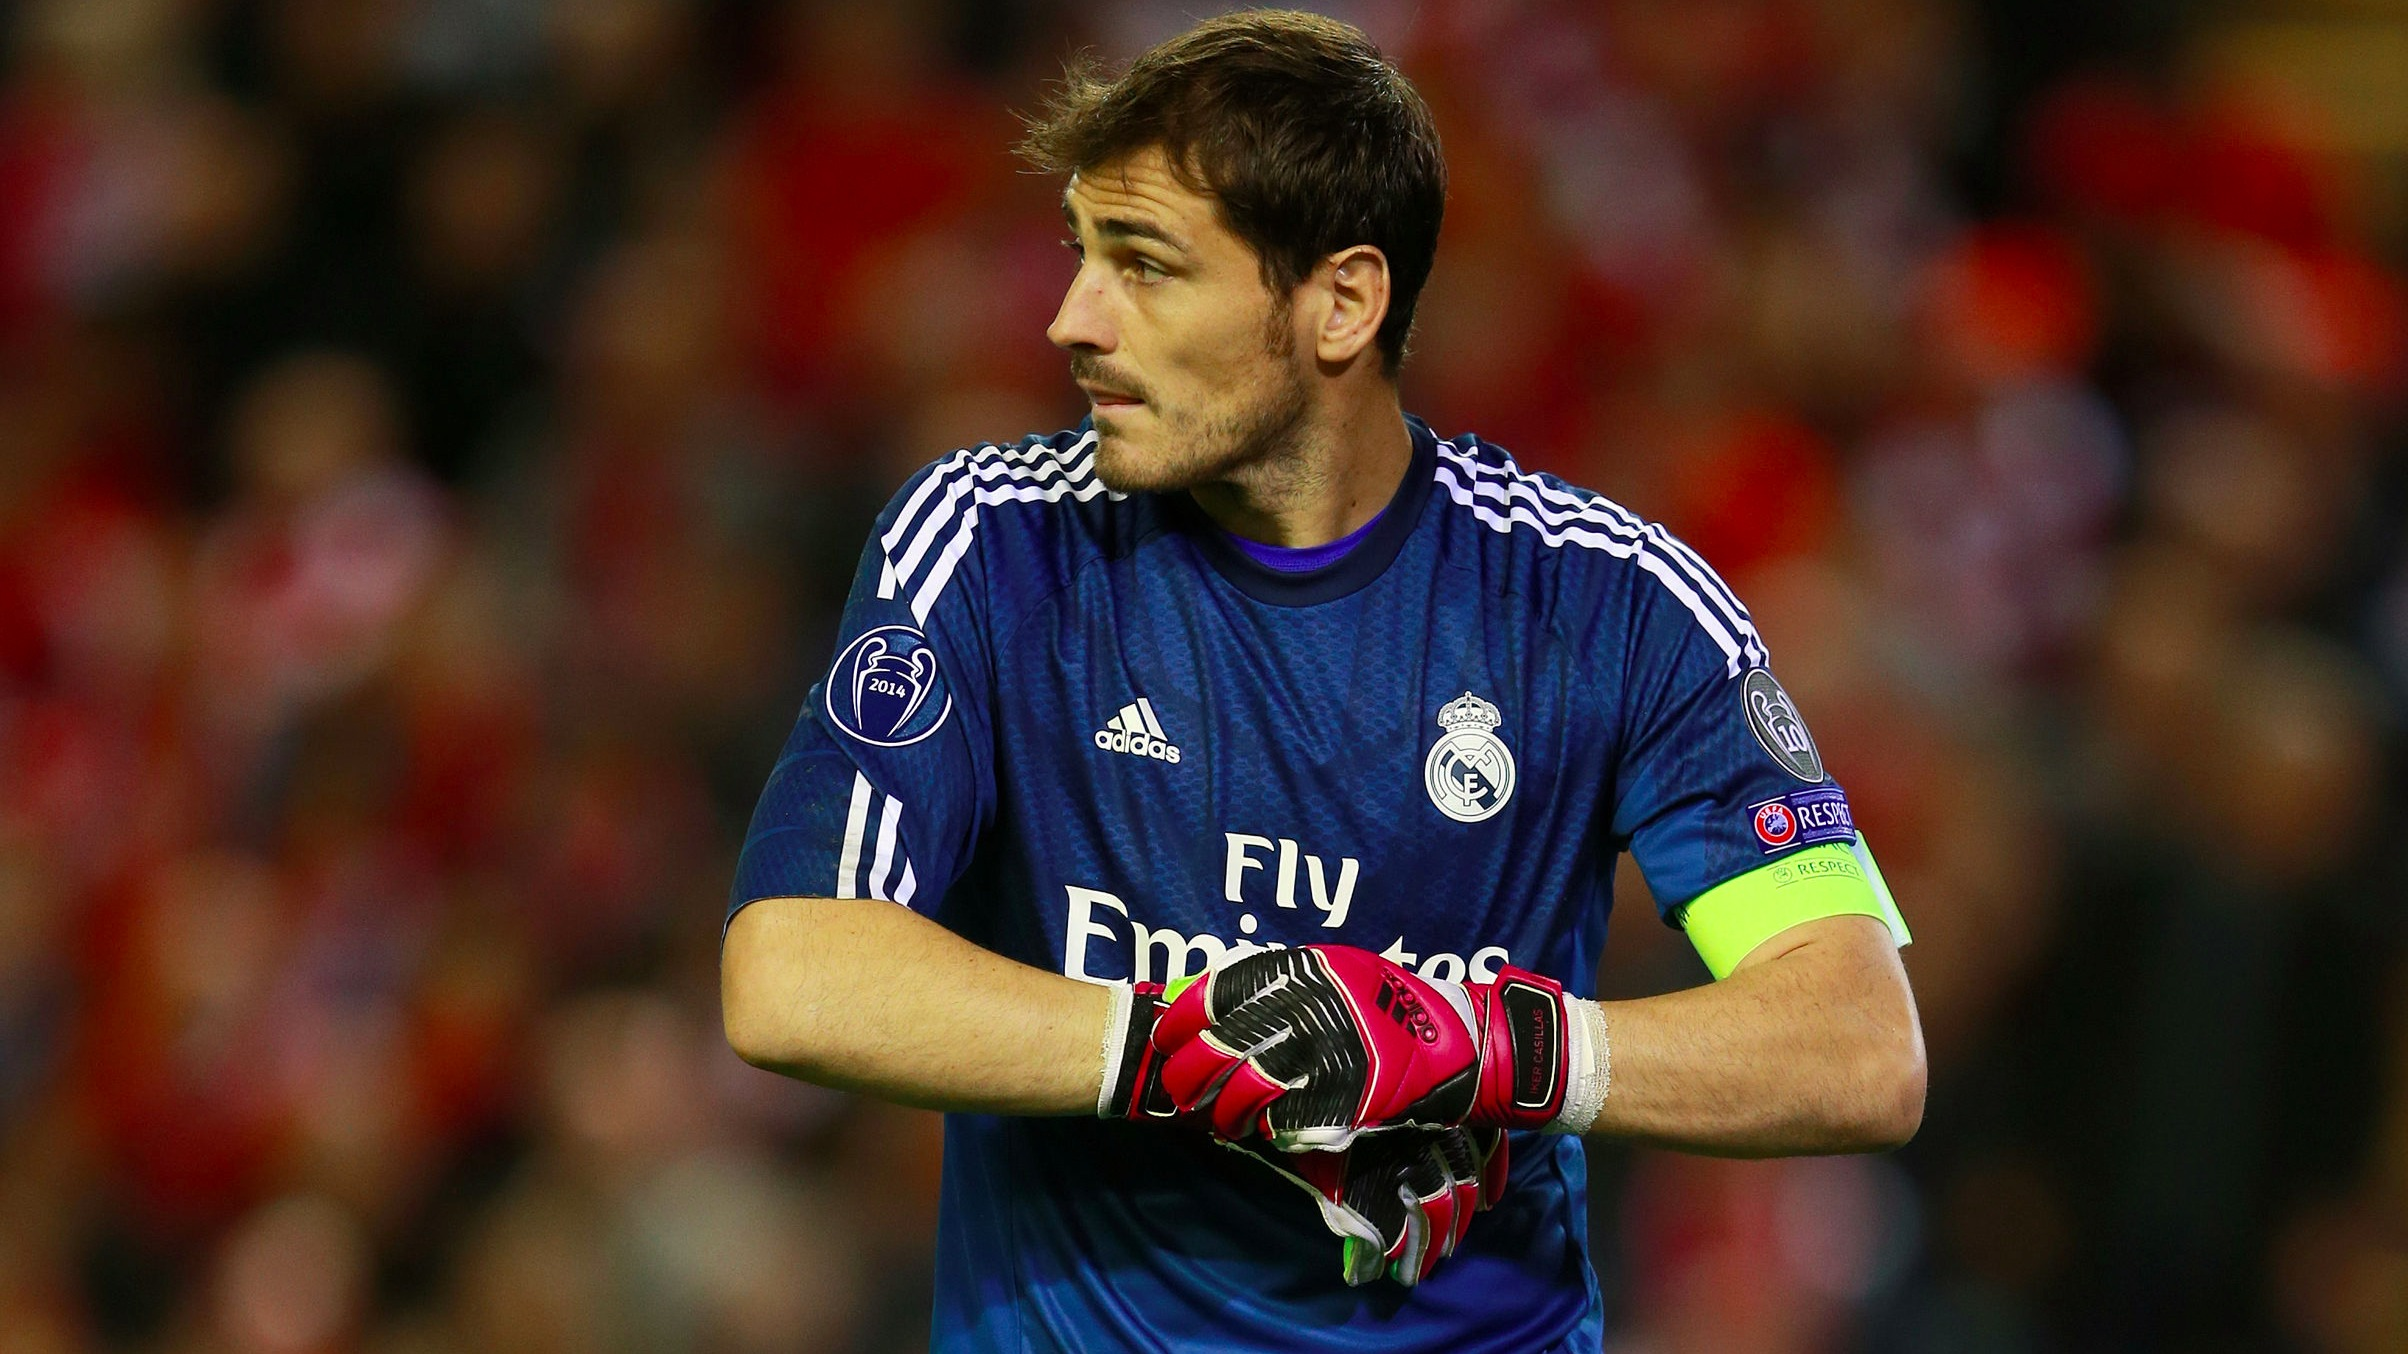 iker casillas a legend With the start, casillas went past manchester united great ryan giggs, who played in 19 champions league campaigns rounding out the top three is another united legend, paul scholes, who took part.